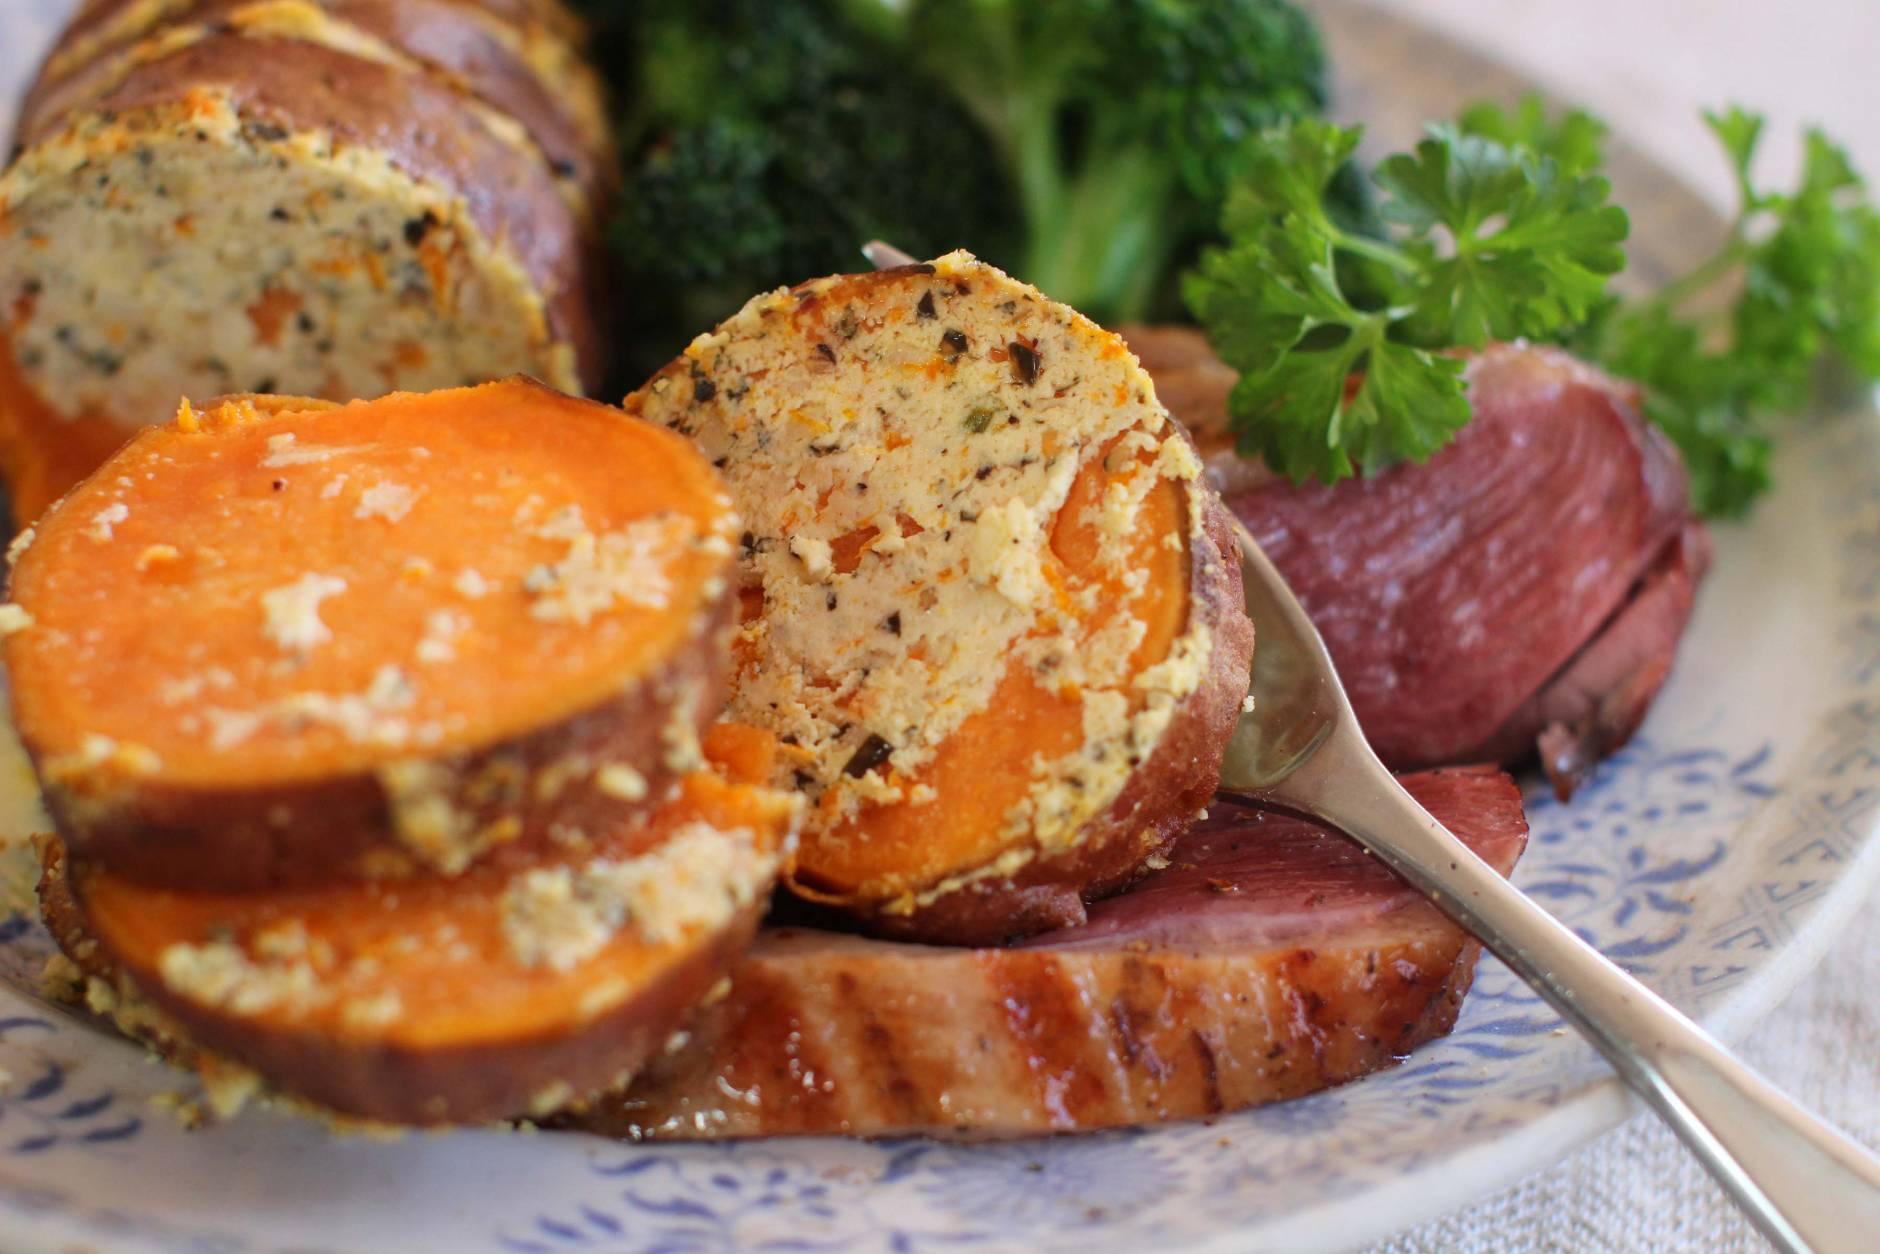 This April 13, 2015 photo shows goat cheese stuffed grilled sweet potatoes in Concord, N.H. (AP Photo/Matthew Mead)